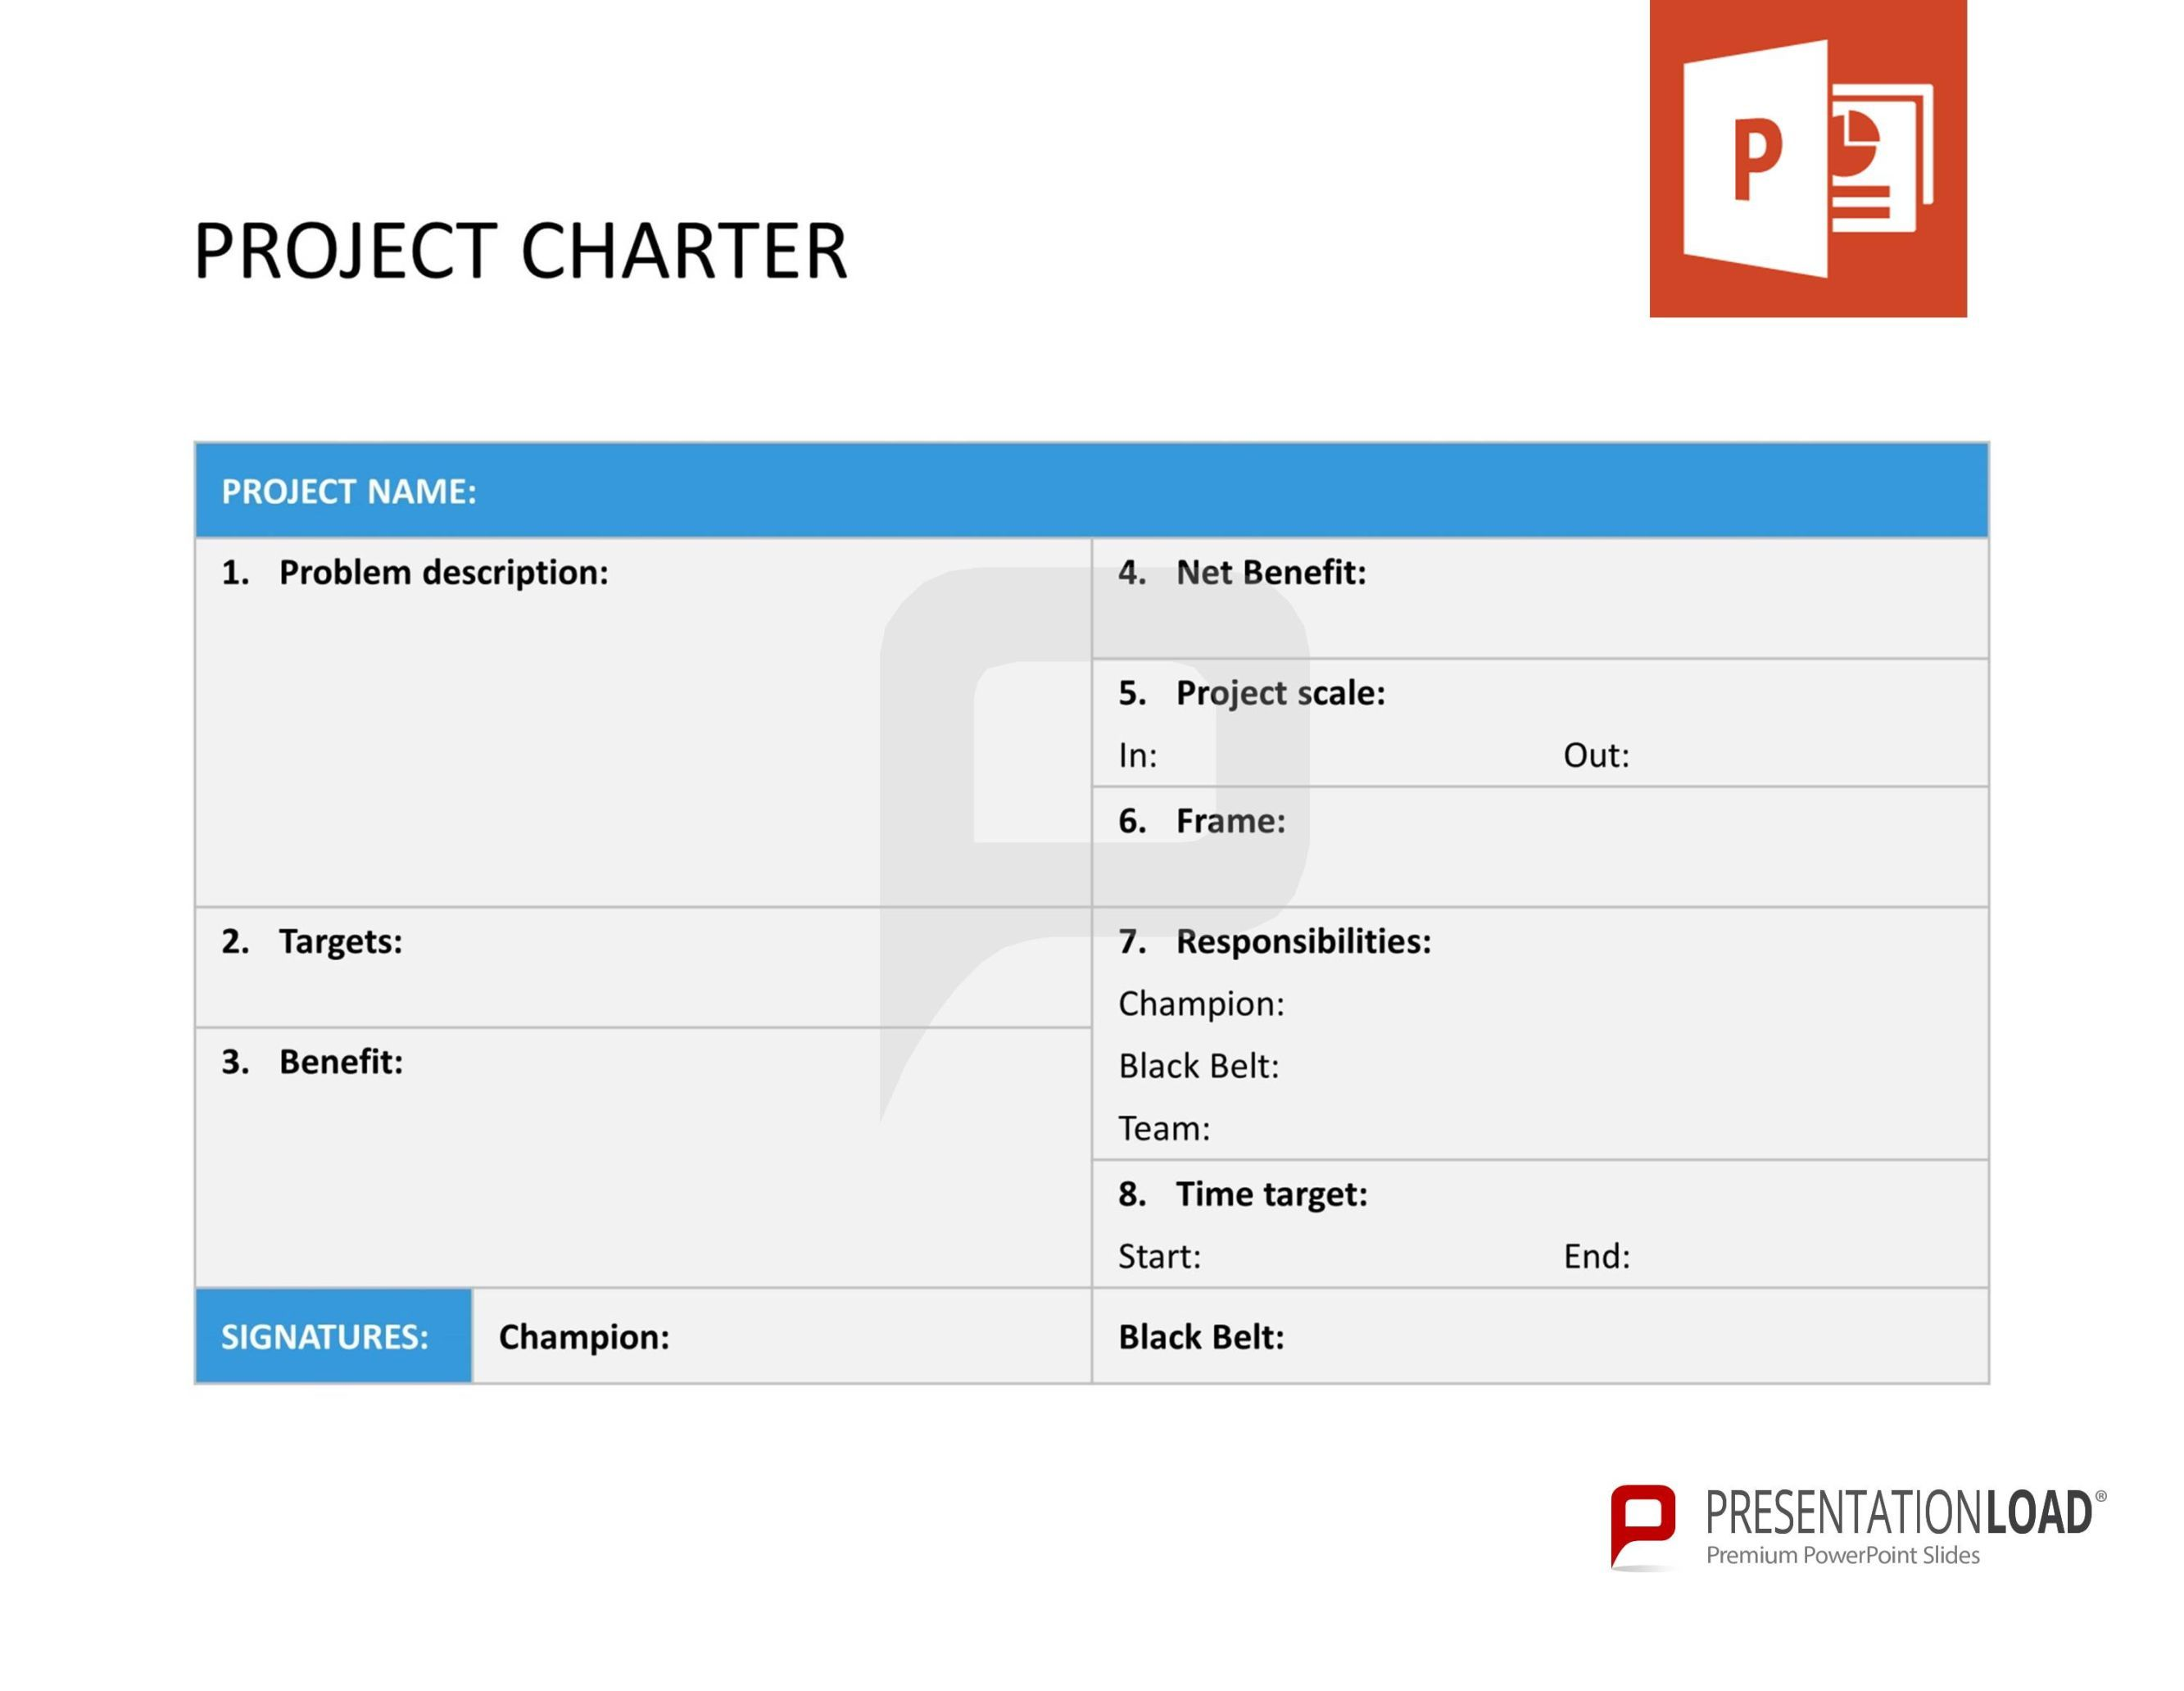 Project charter six sigma powerpoint templates httpwww project charter six sigma powerpoint templates http toneelgroepblik Gallery